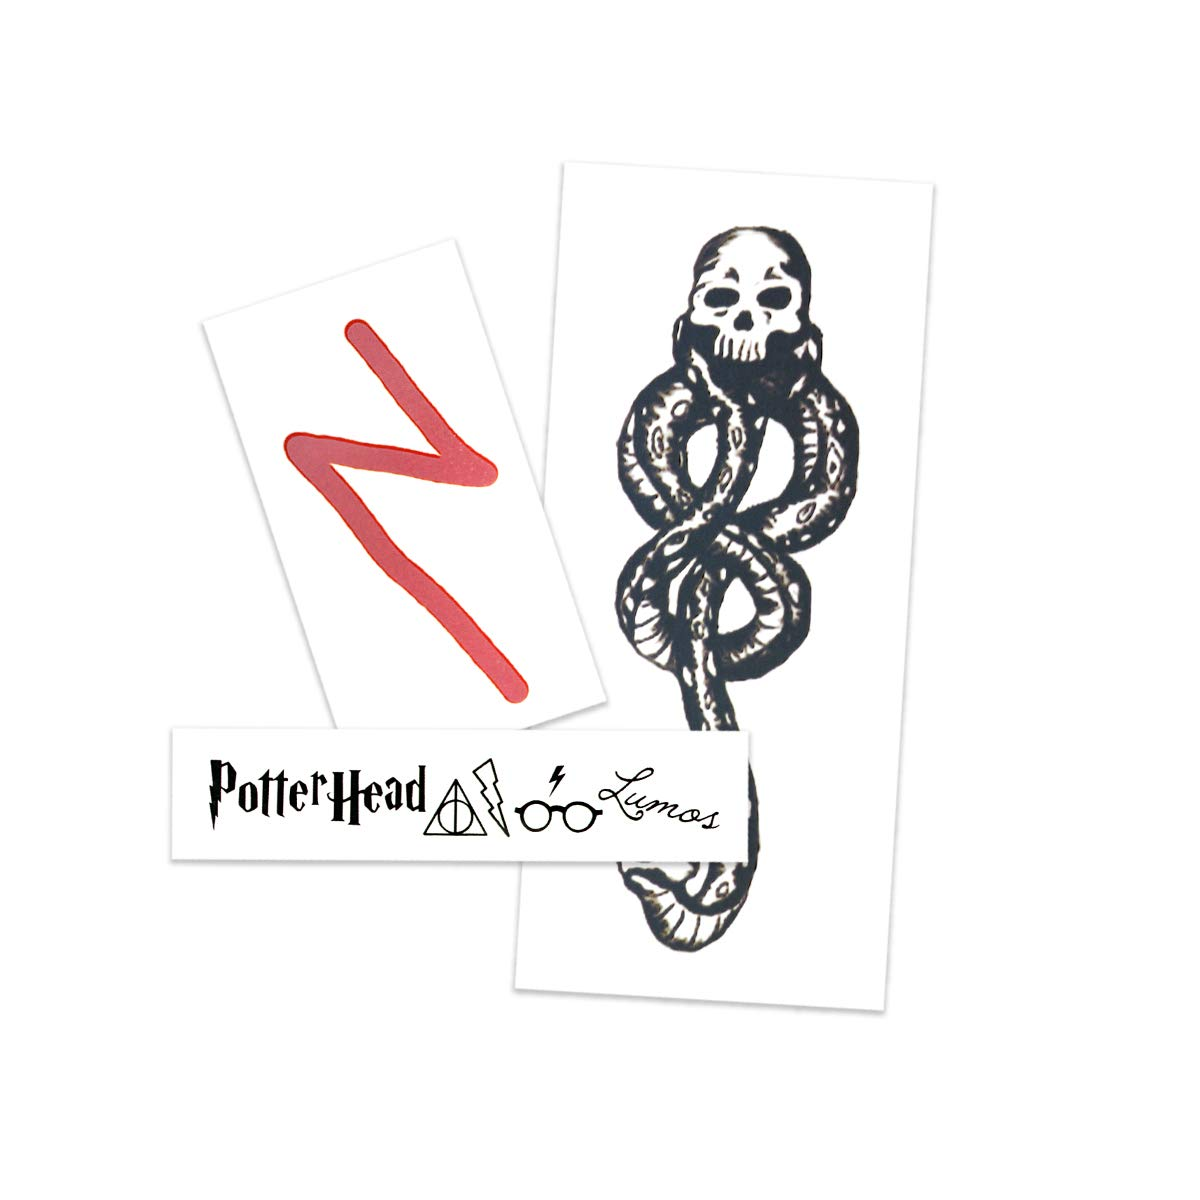 Harry Potter Pack Temporary Tattoos   Skin Safe   MADE IN THE USA  Removable